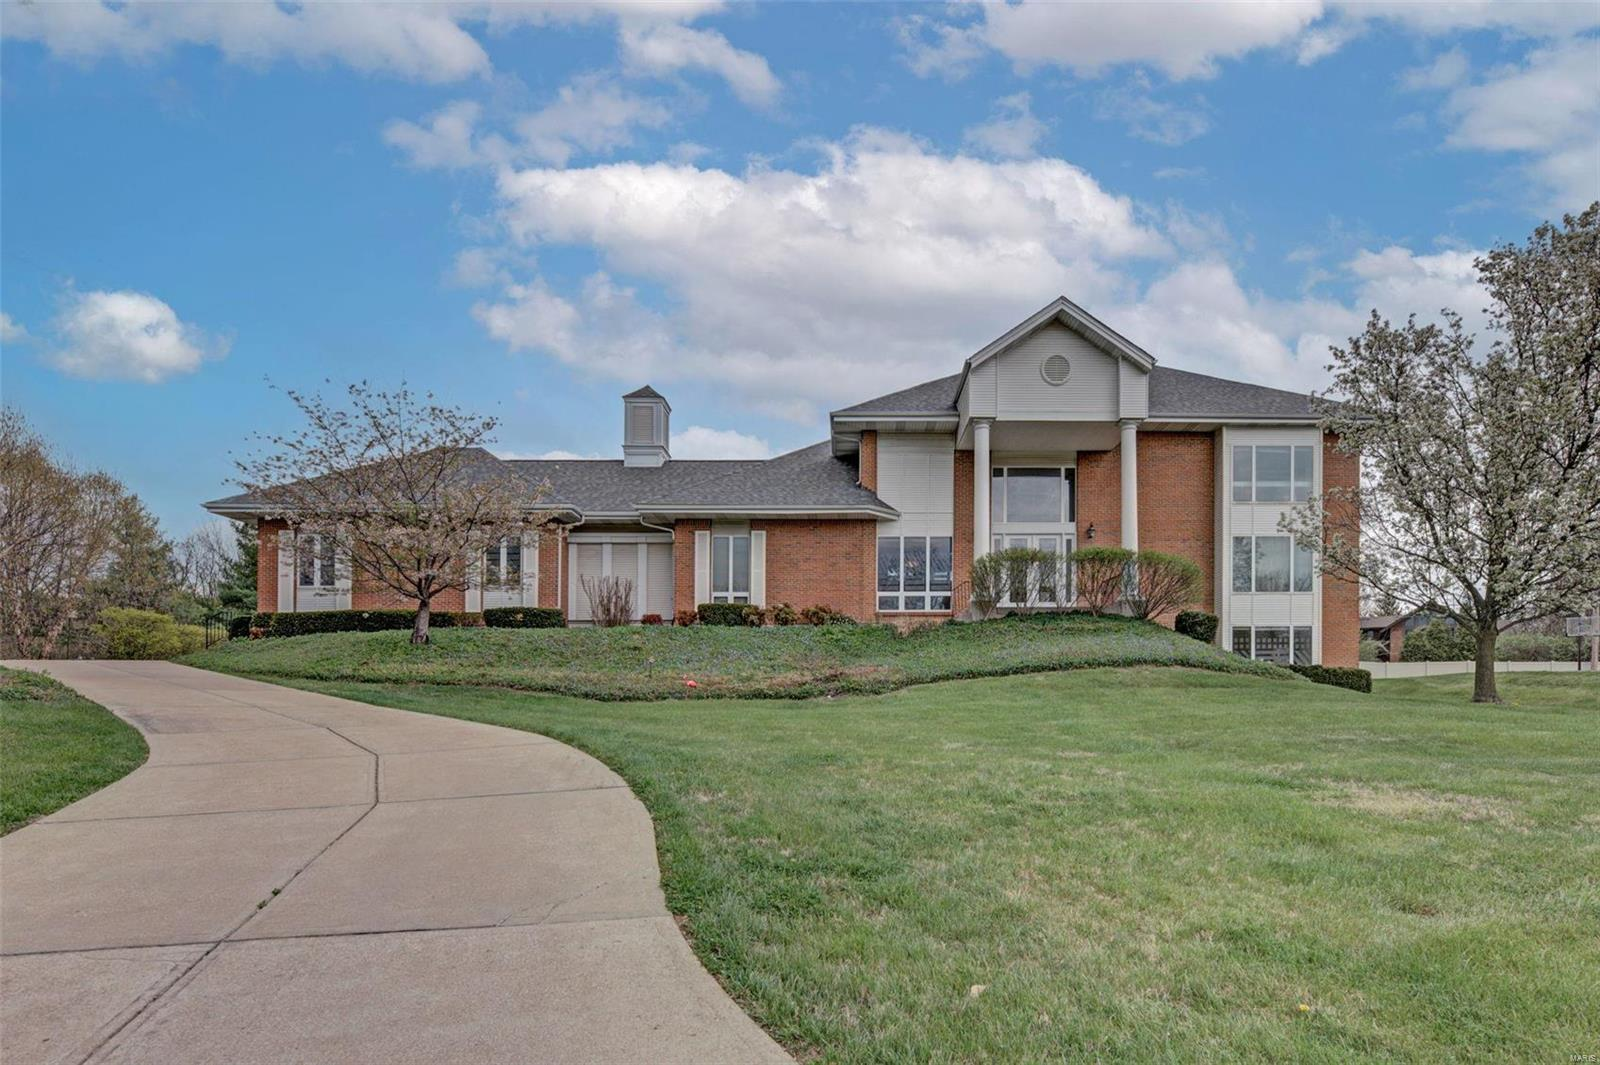 36 Sackston Woods Property Photo - Creve Coeur, MO real estate listing